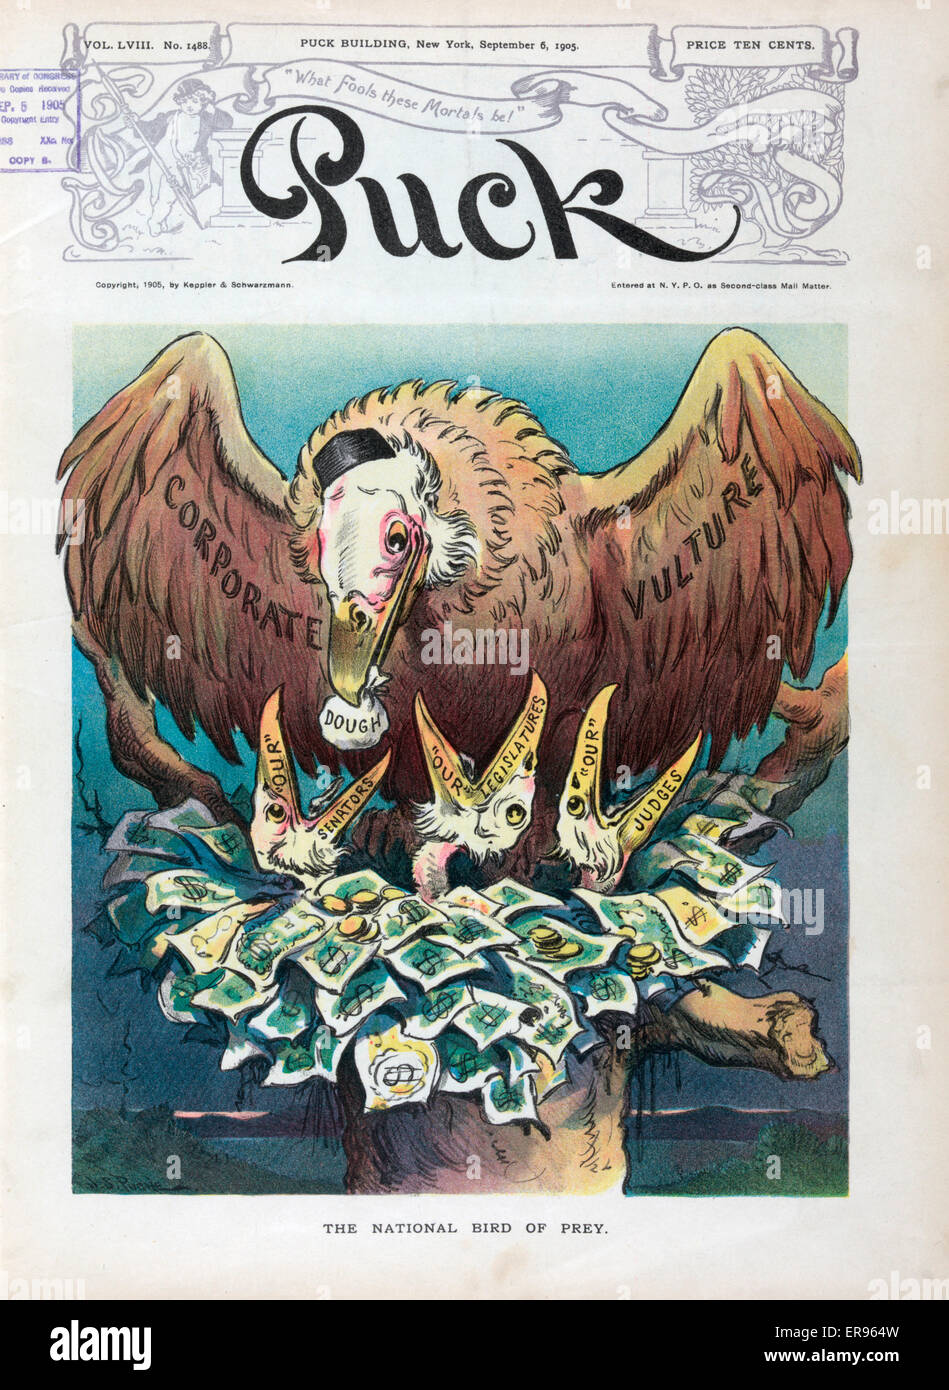 The national bird of prey. Illustration shows a large vulture labeled  Corporate Vulture, wearing a cap usually associated with John D.  Rockefeller, feeding a bag of Dough to a chick labeled 'Our'